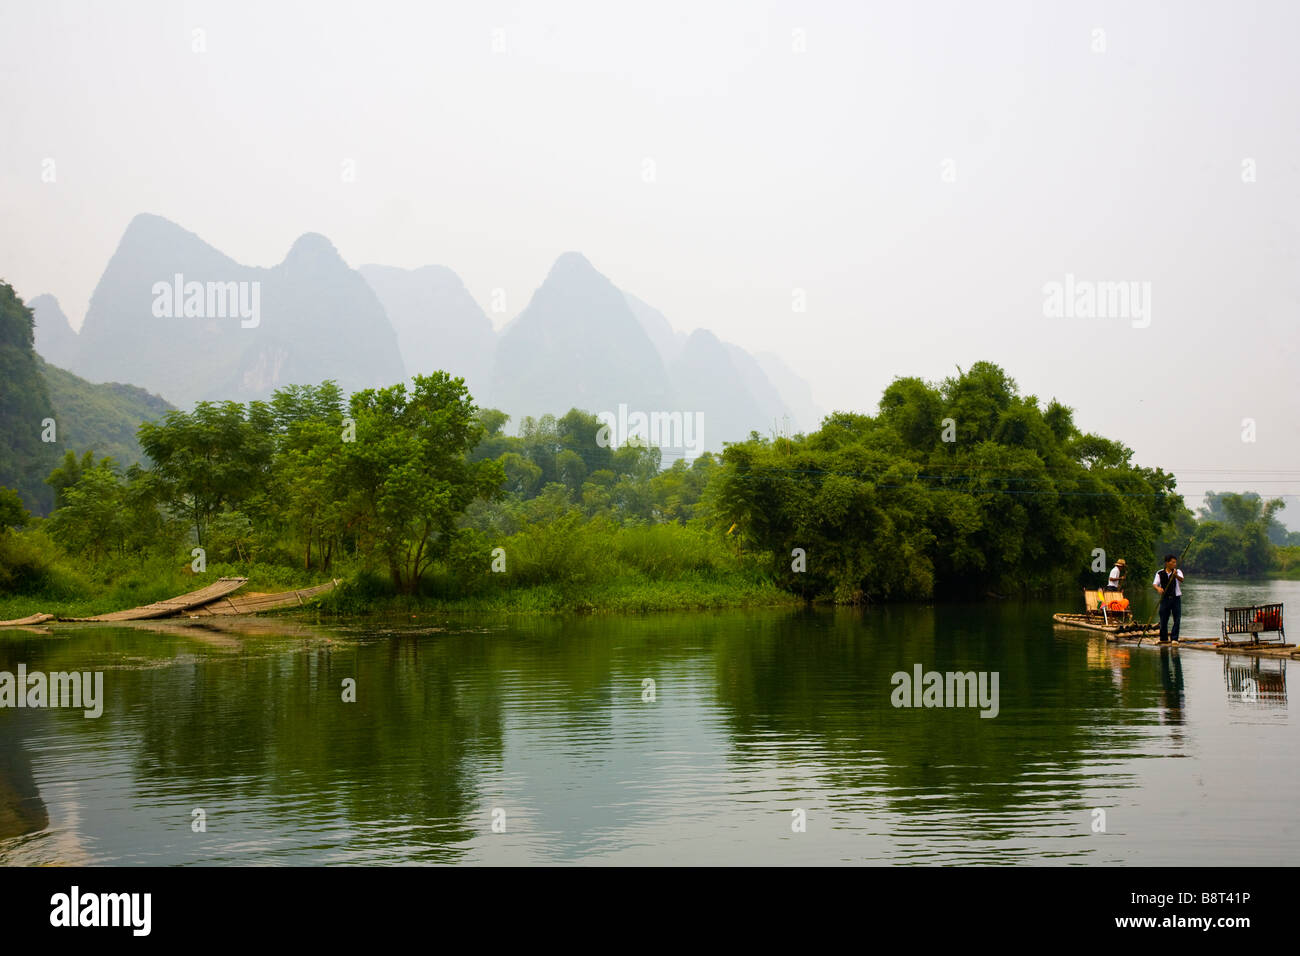 The Li River near Yangshuo and Guilin, Guangxi Province, China. Stock Photo